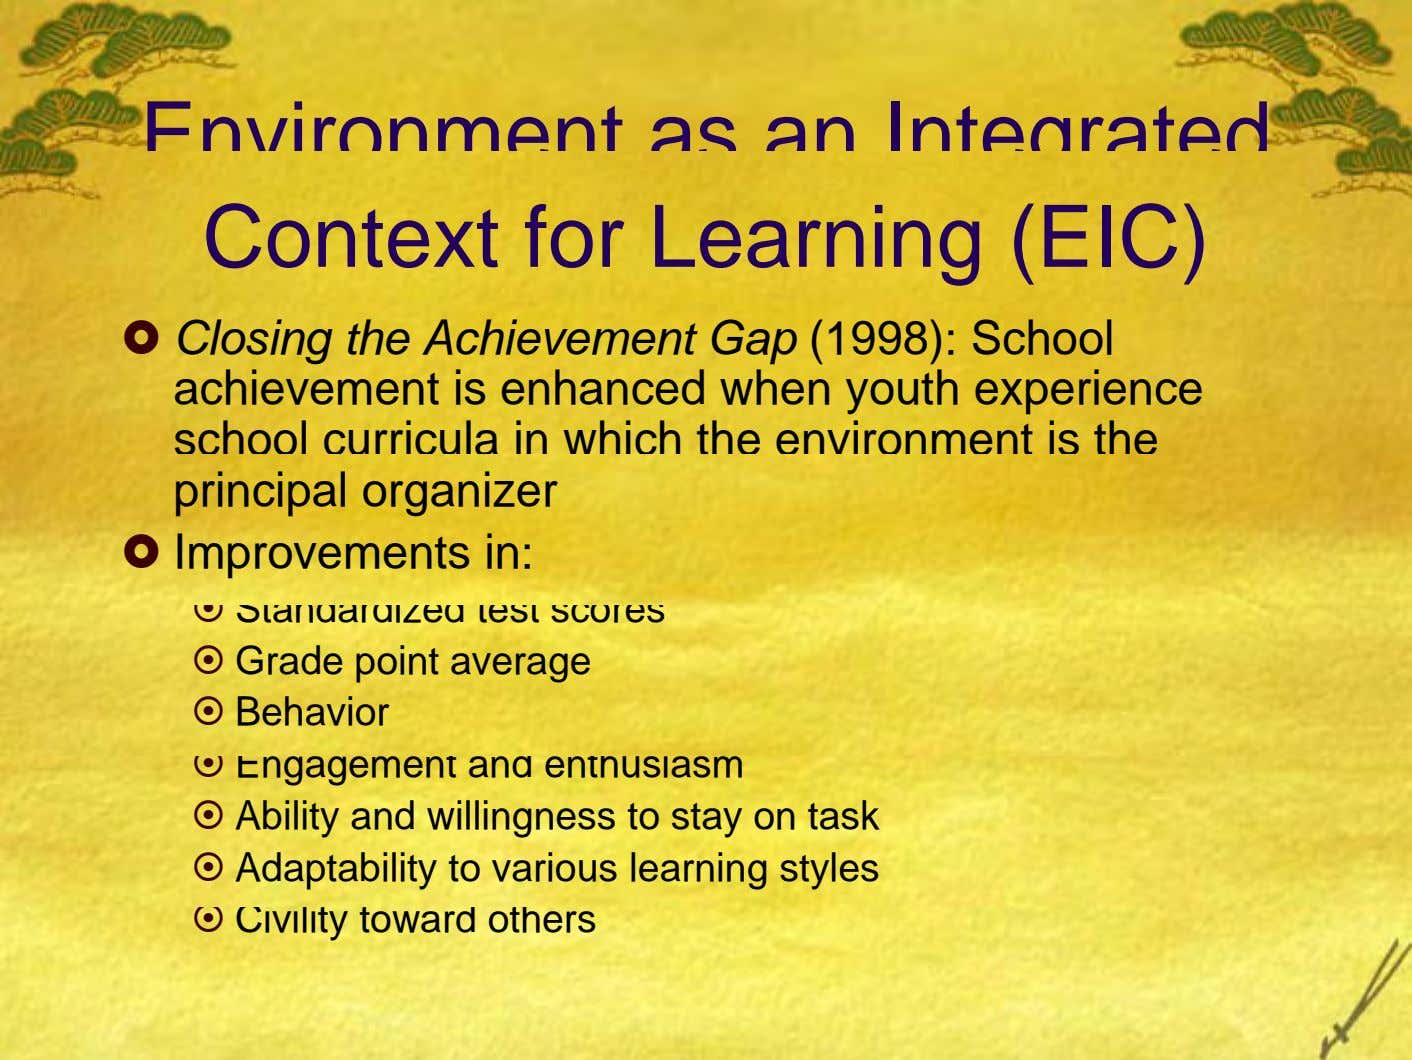 Environment as an Integrated Context for Learning (EIC) Closing the Achievement Gap (1998): School achievement is